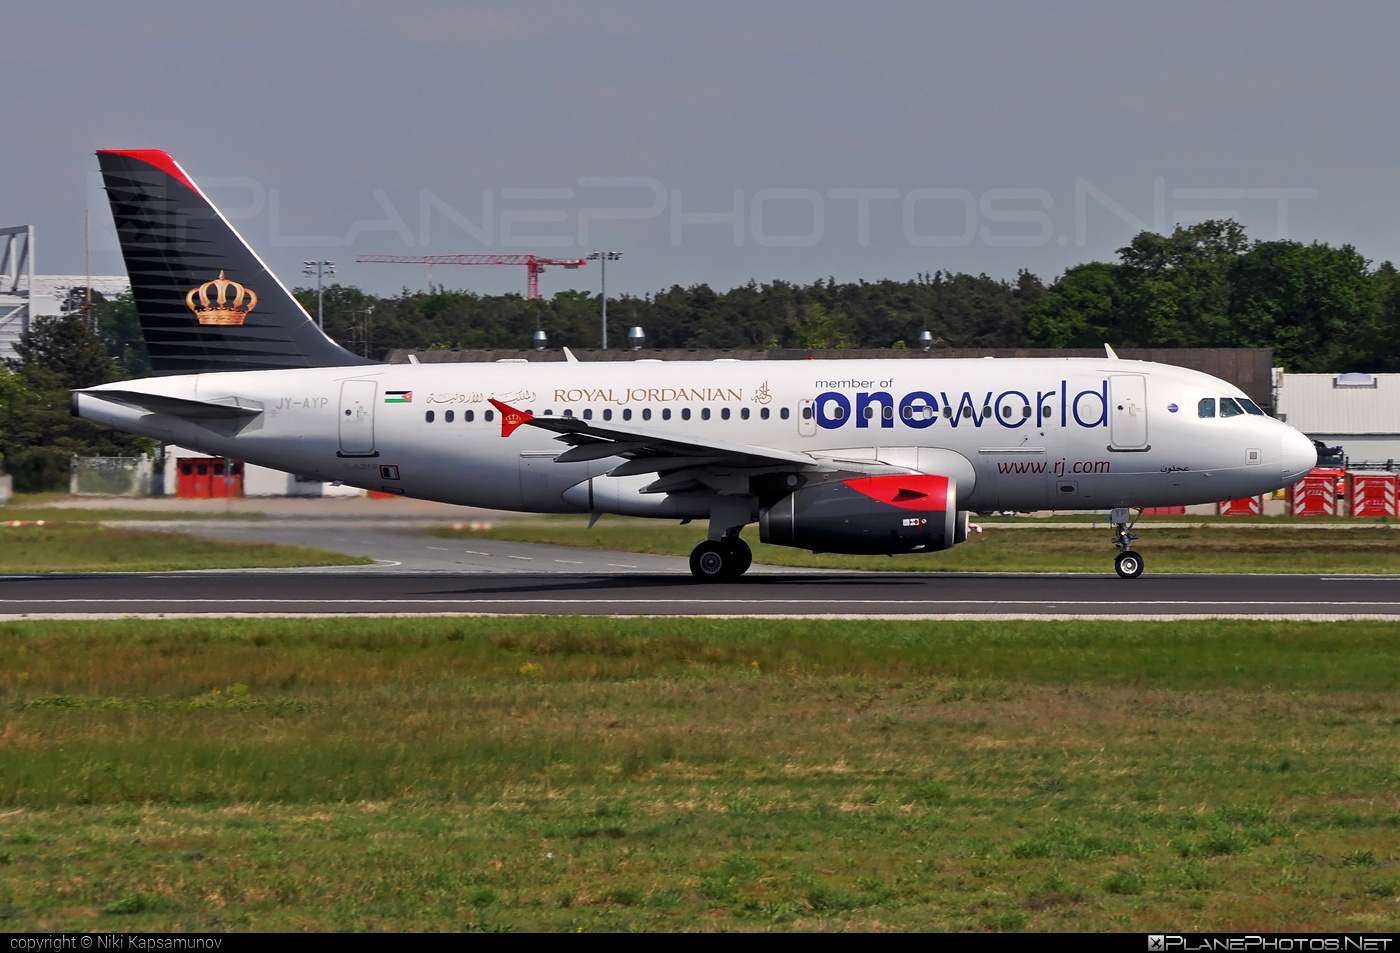 Airbus A319-132 - JY-AYP operated by Royal Jordanian #a319 #a320family #airbus #airbus319 #oneworld